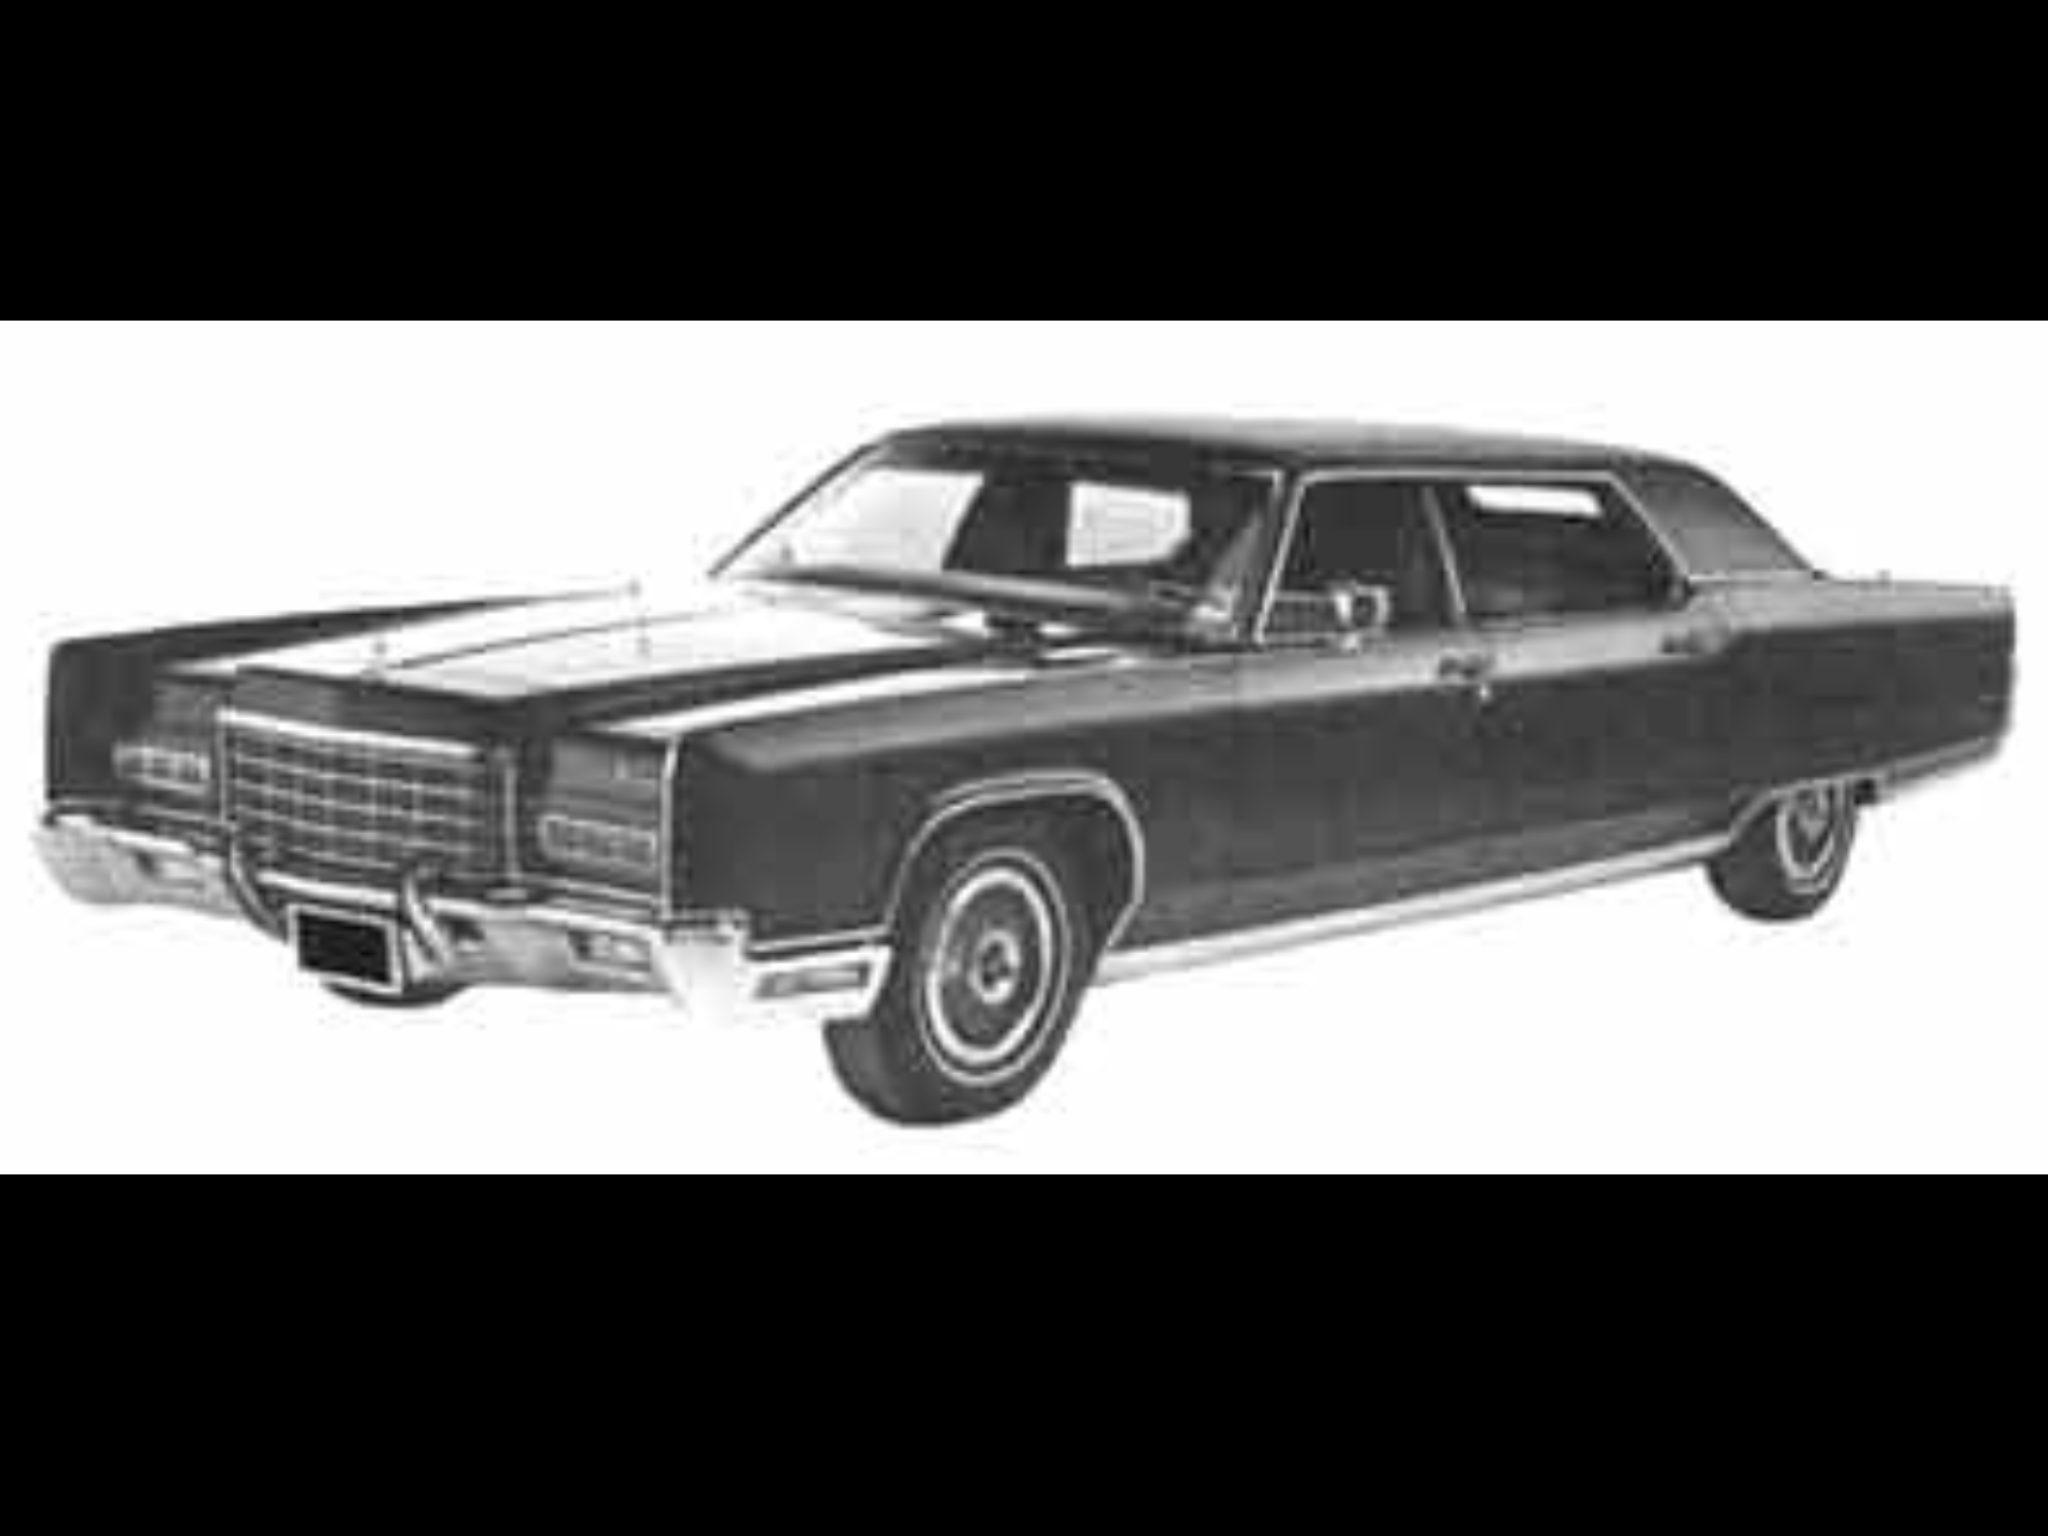 1972 Lincoln Continental Town Car Brougham Limousine By Aha